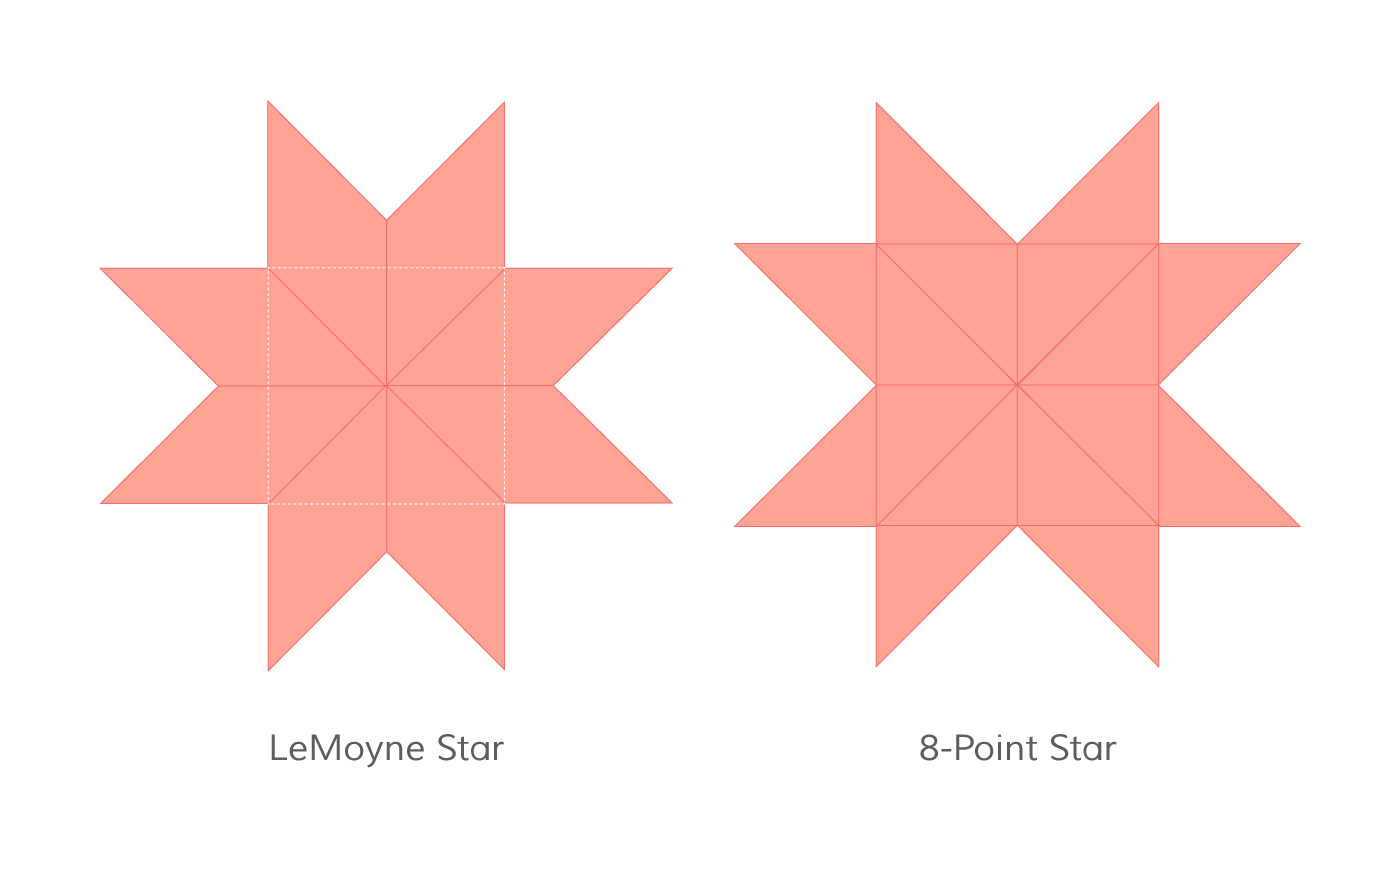 Comparison between the LeMoyne star and 8-Point Star